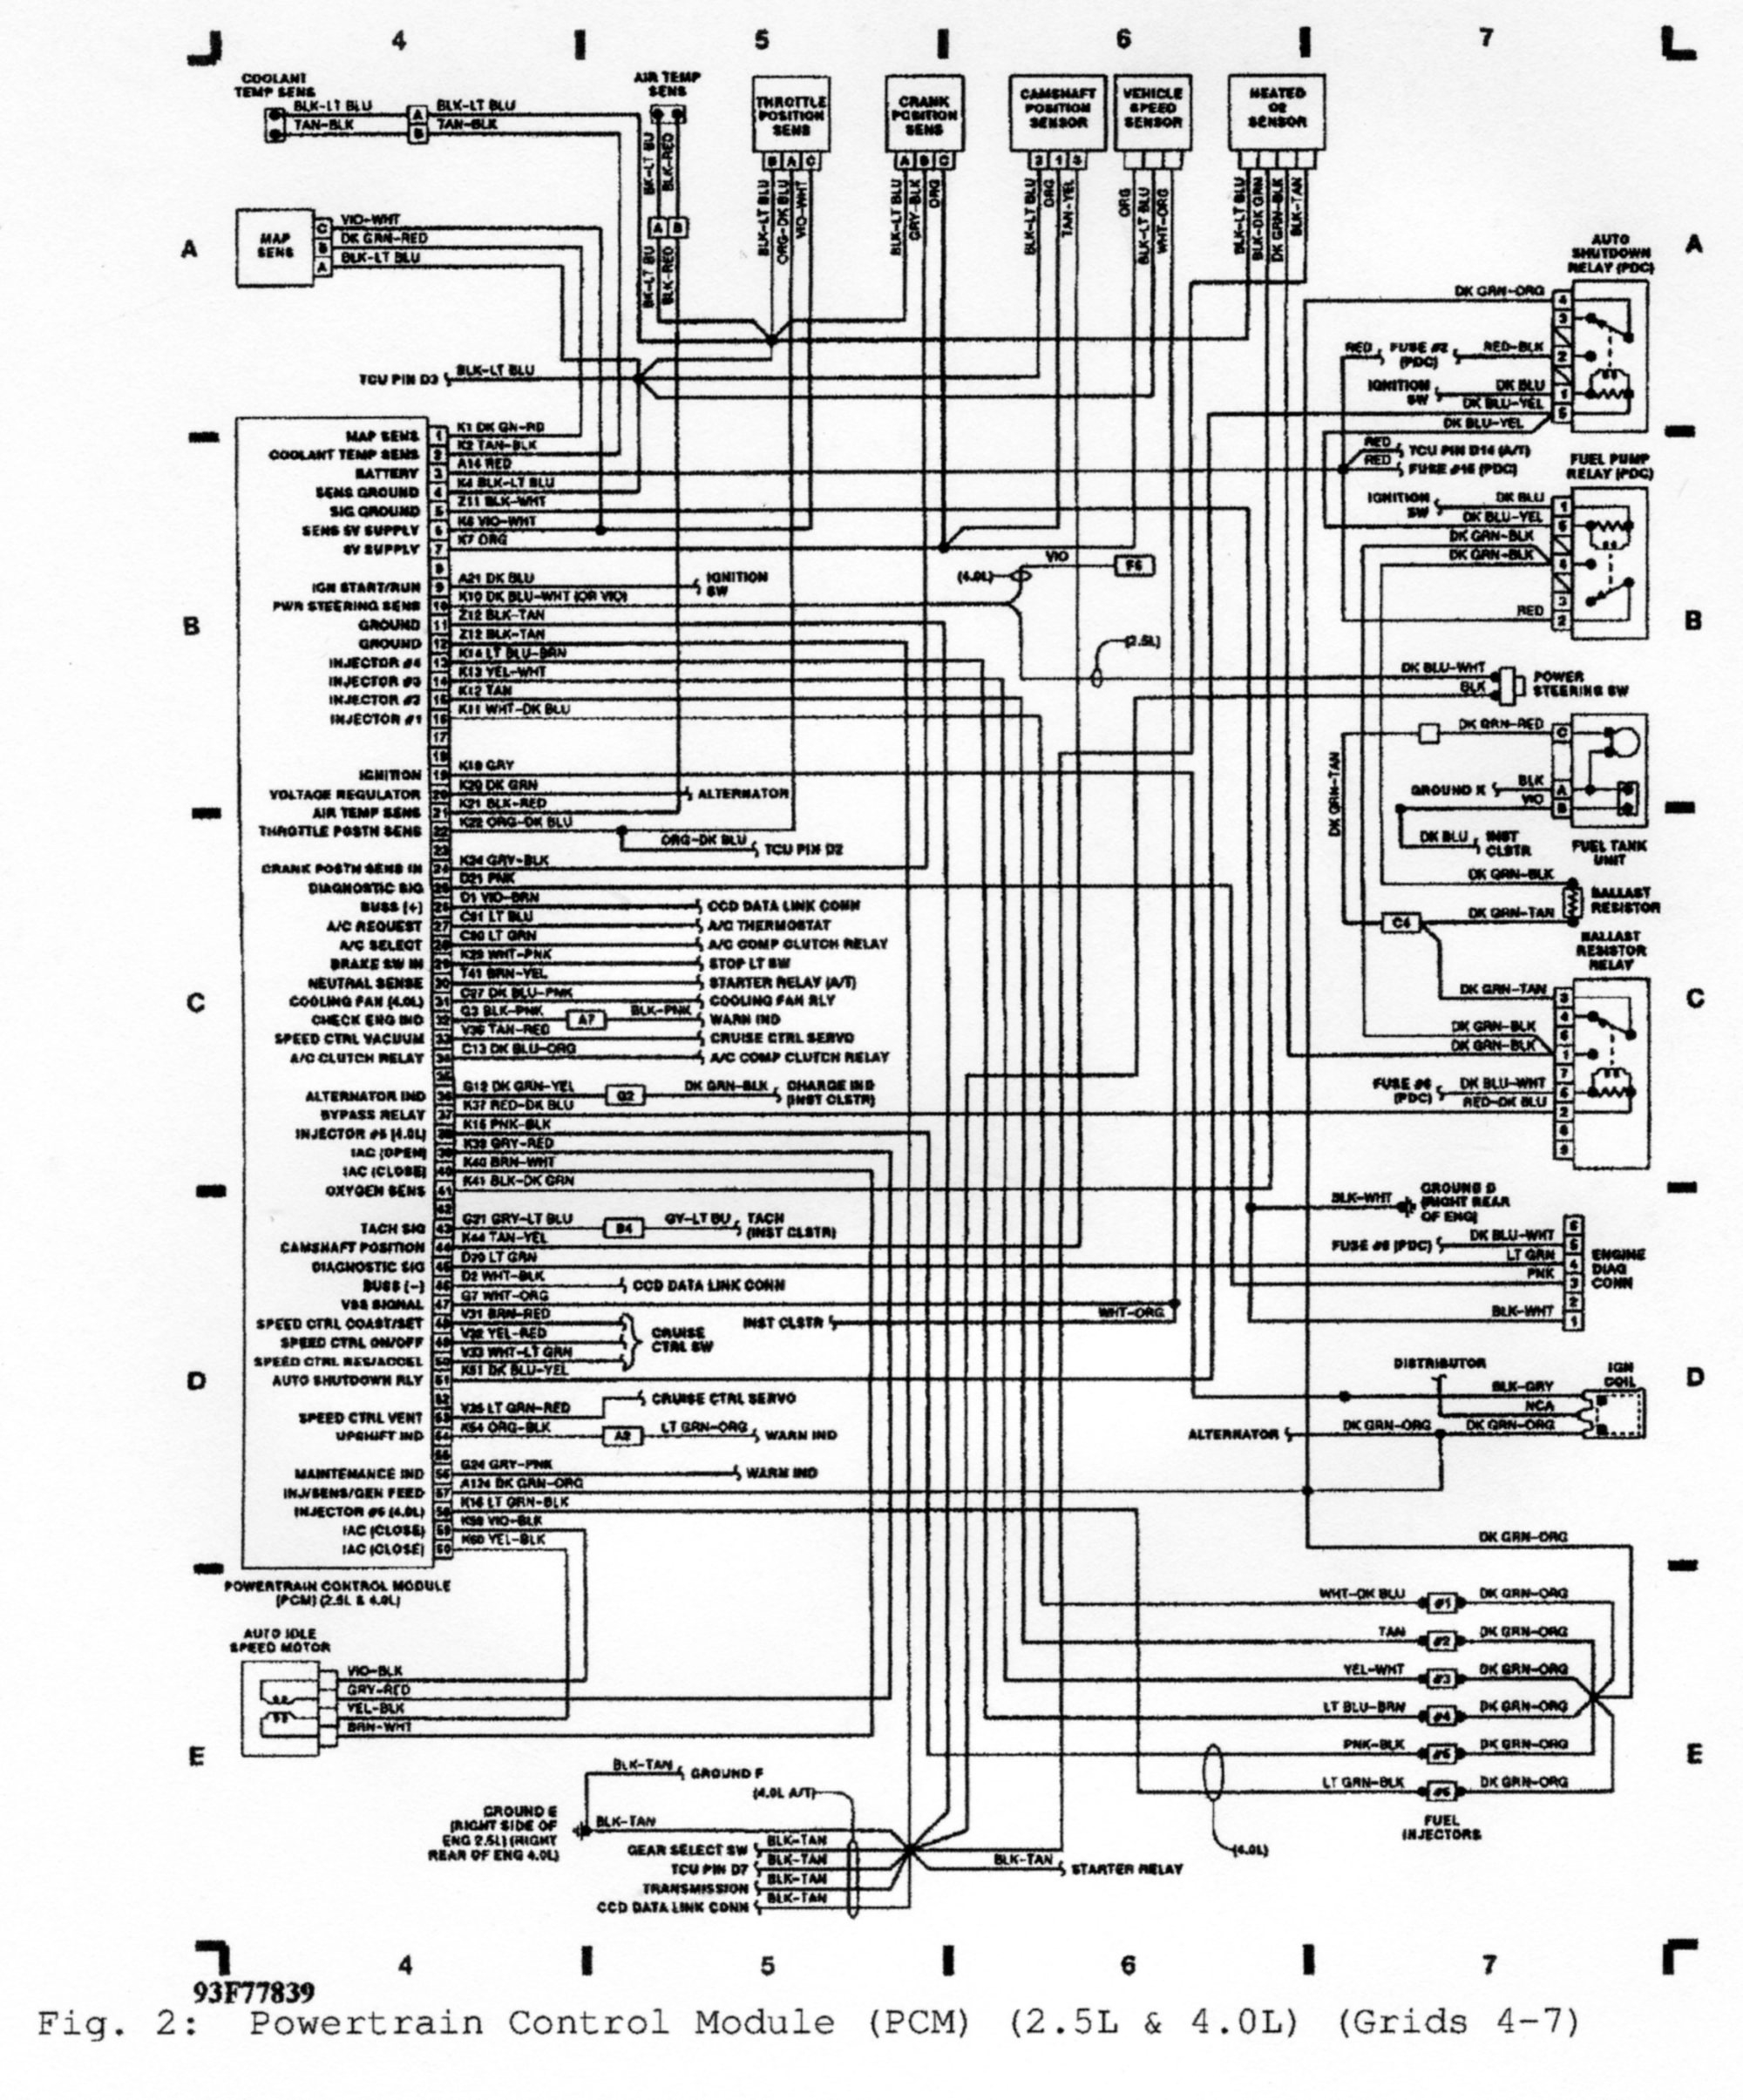 hight resolution of 1992 pcm wiring diagram jeep cherokee forum1992 pcm wiring diagram